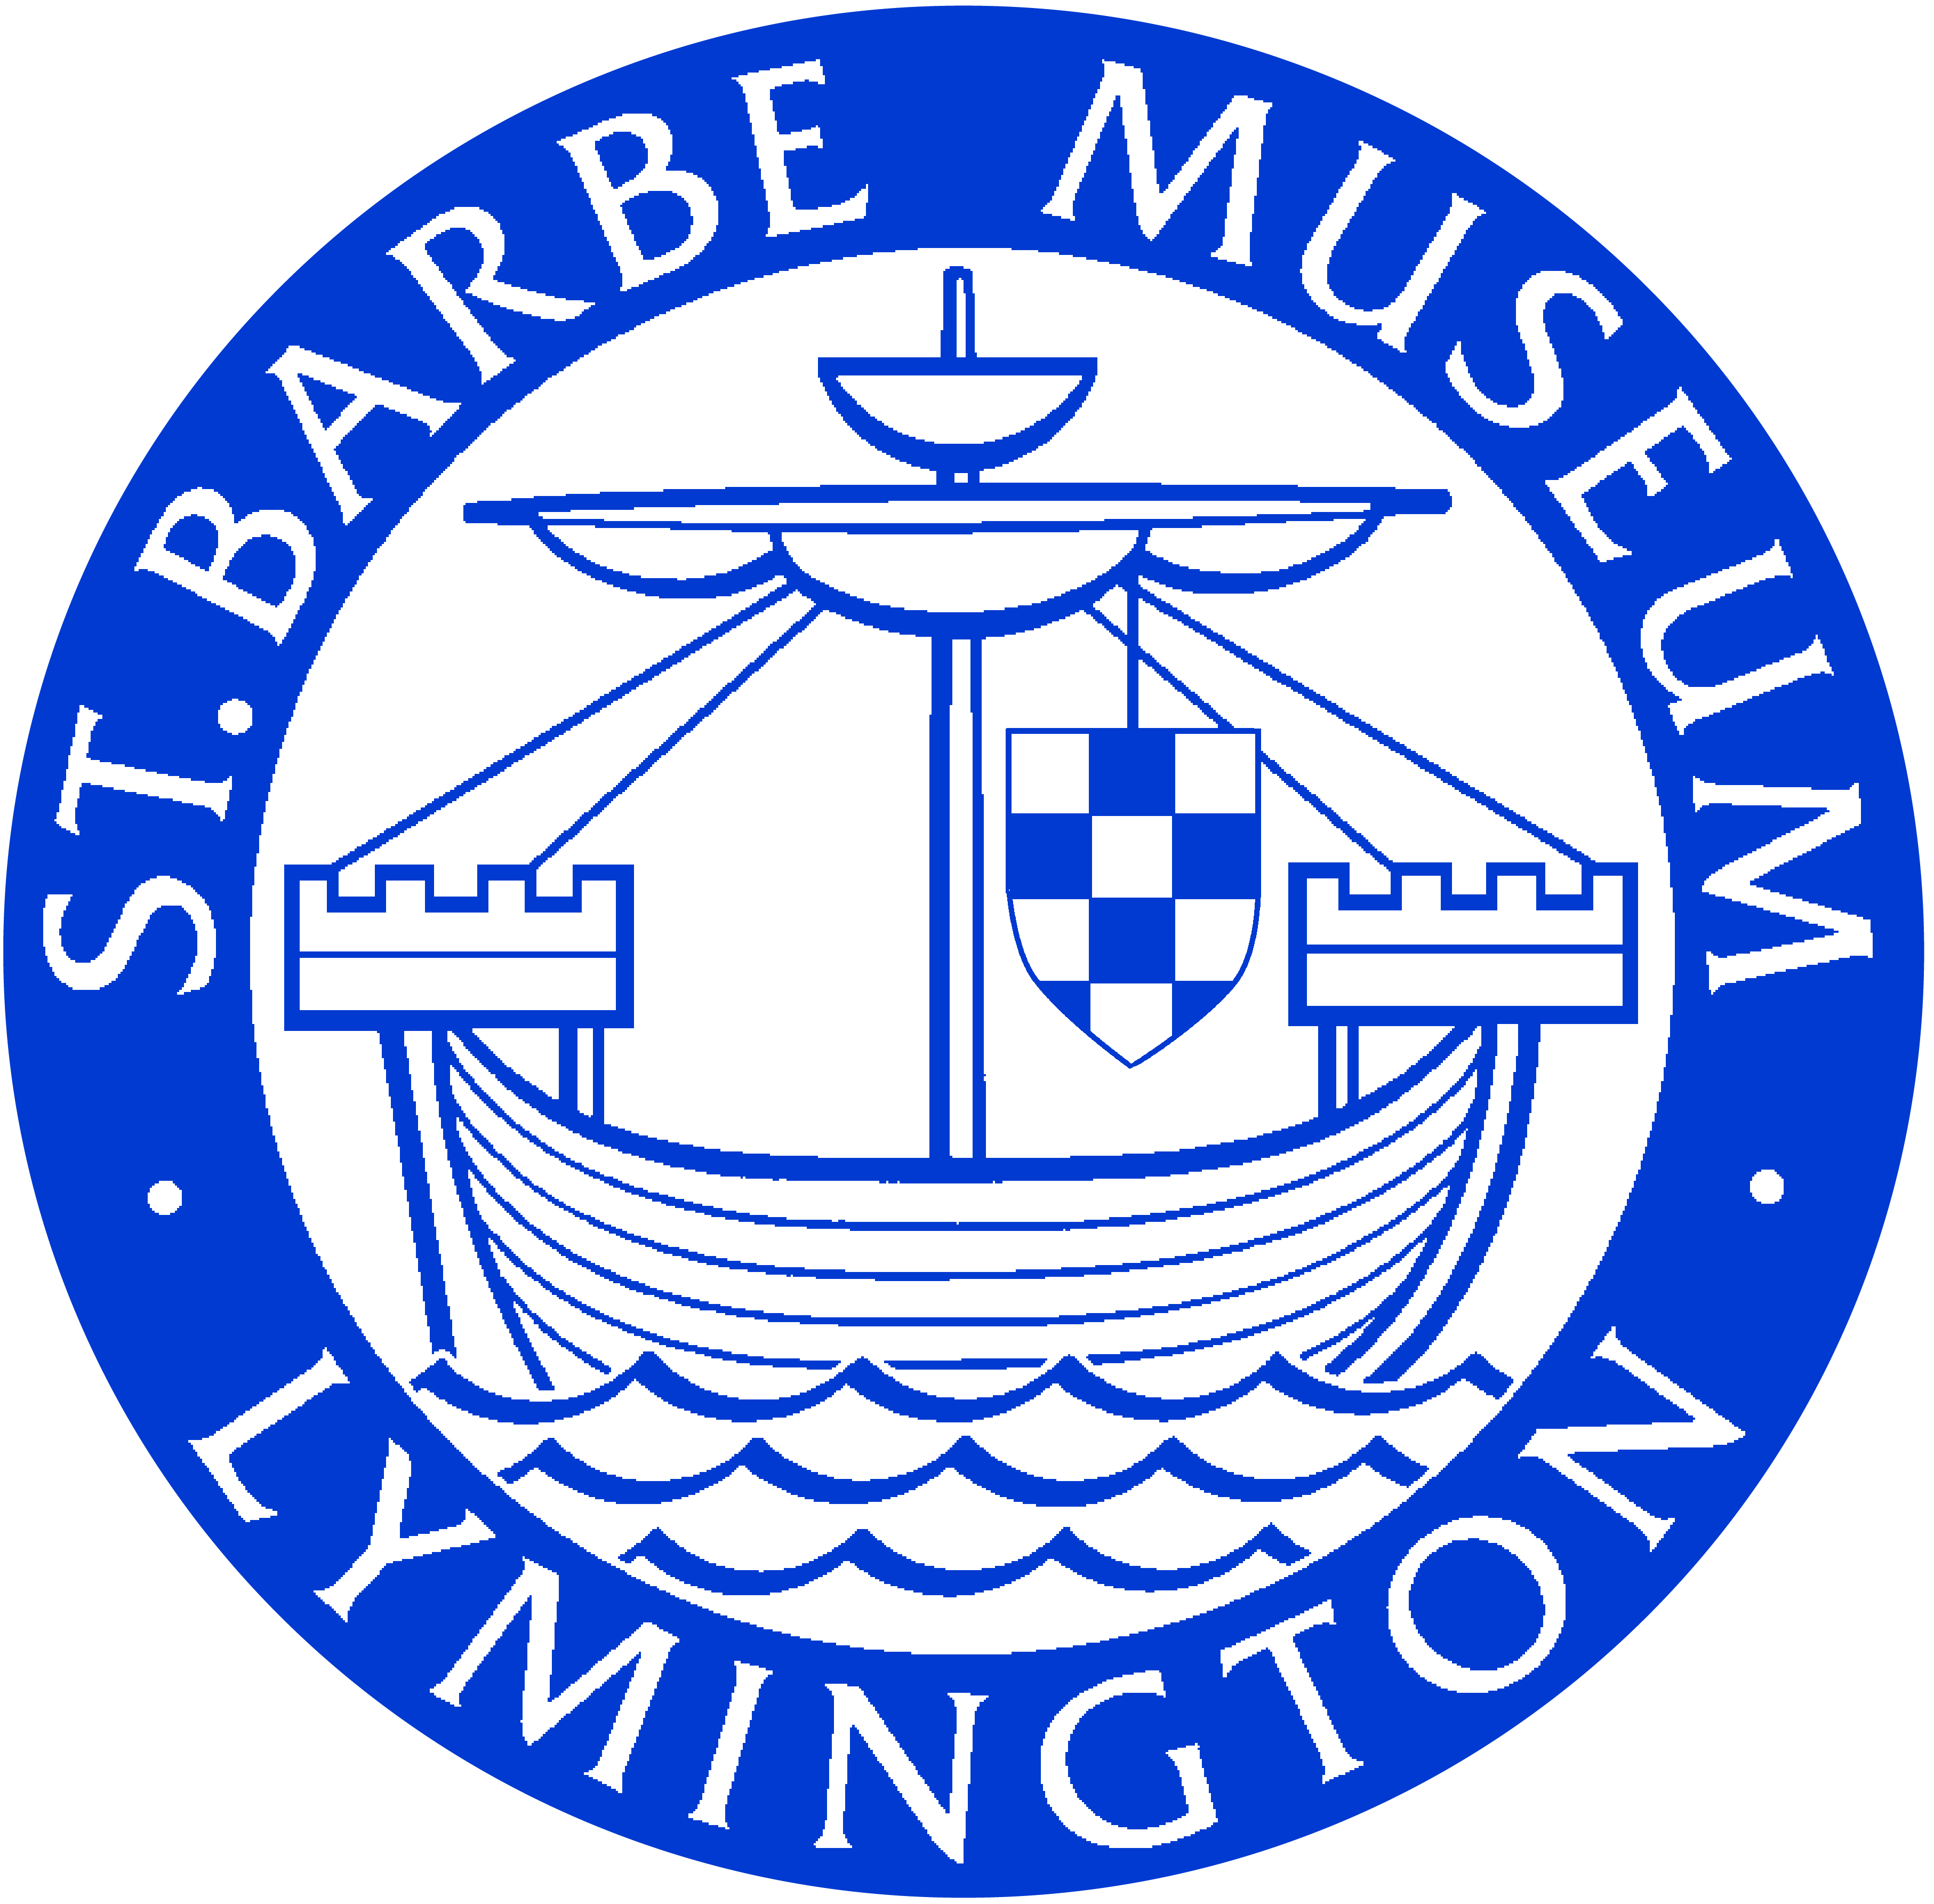 st barbe museum